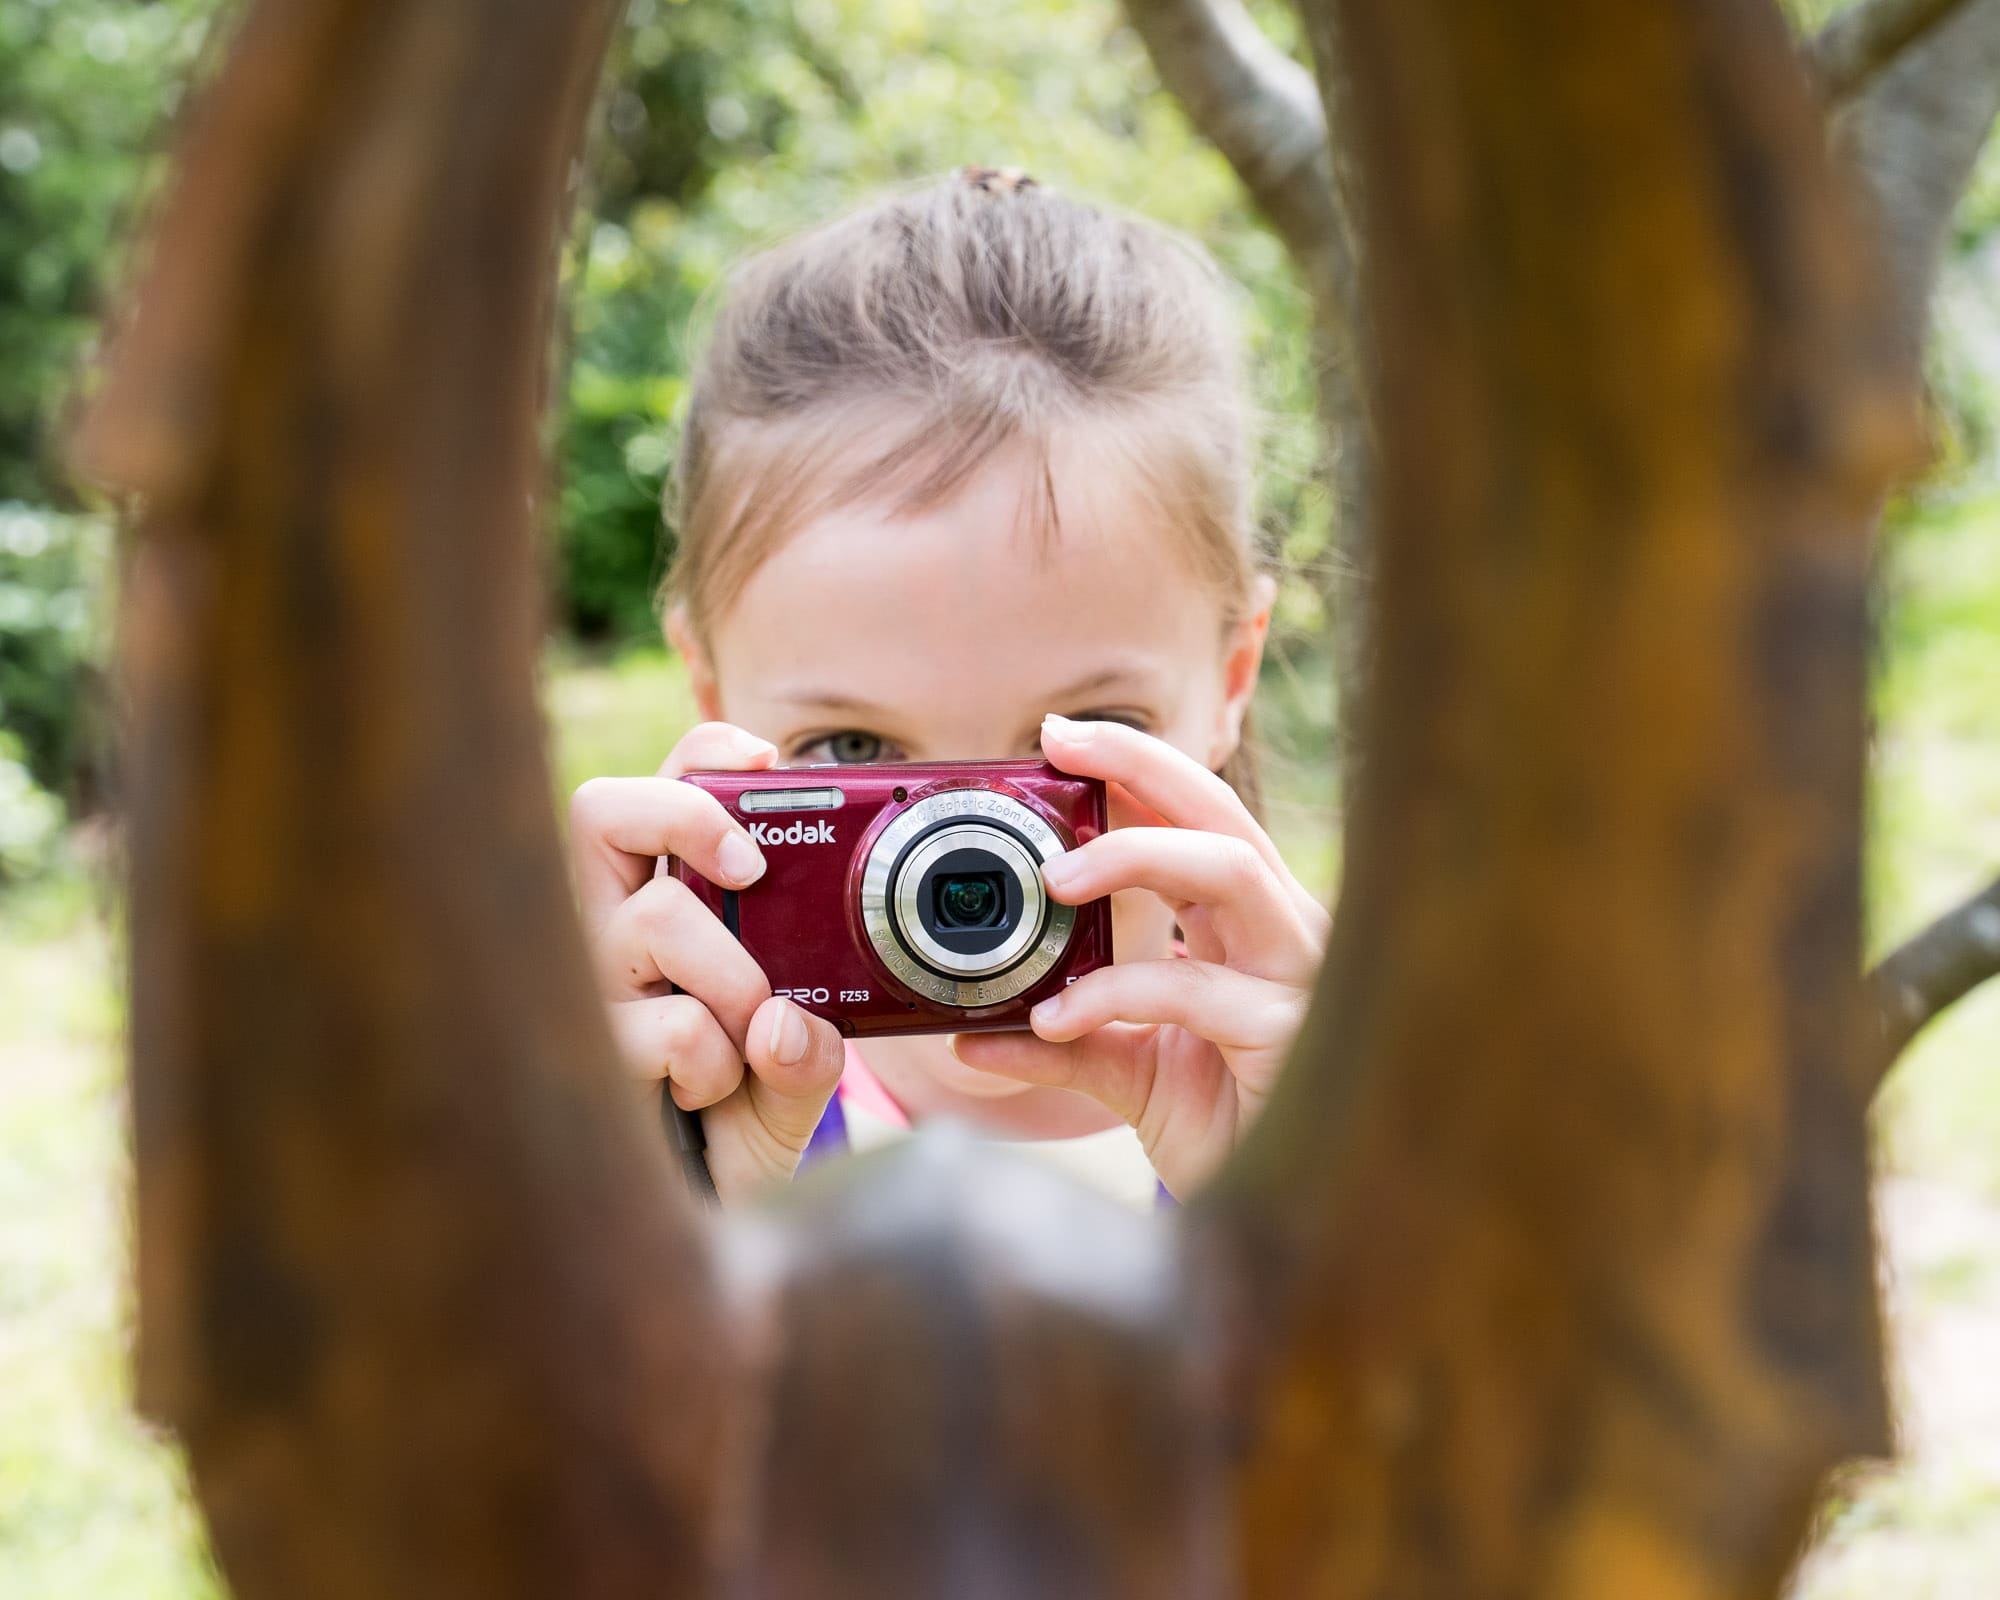 Young girl holding a red camera peeking through a gap in a tree trunk